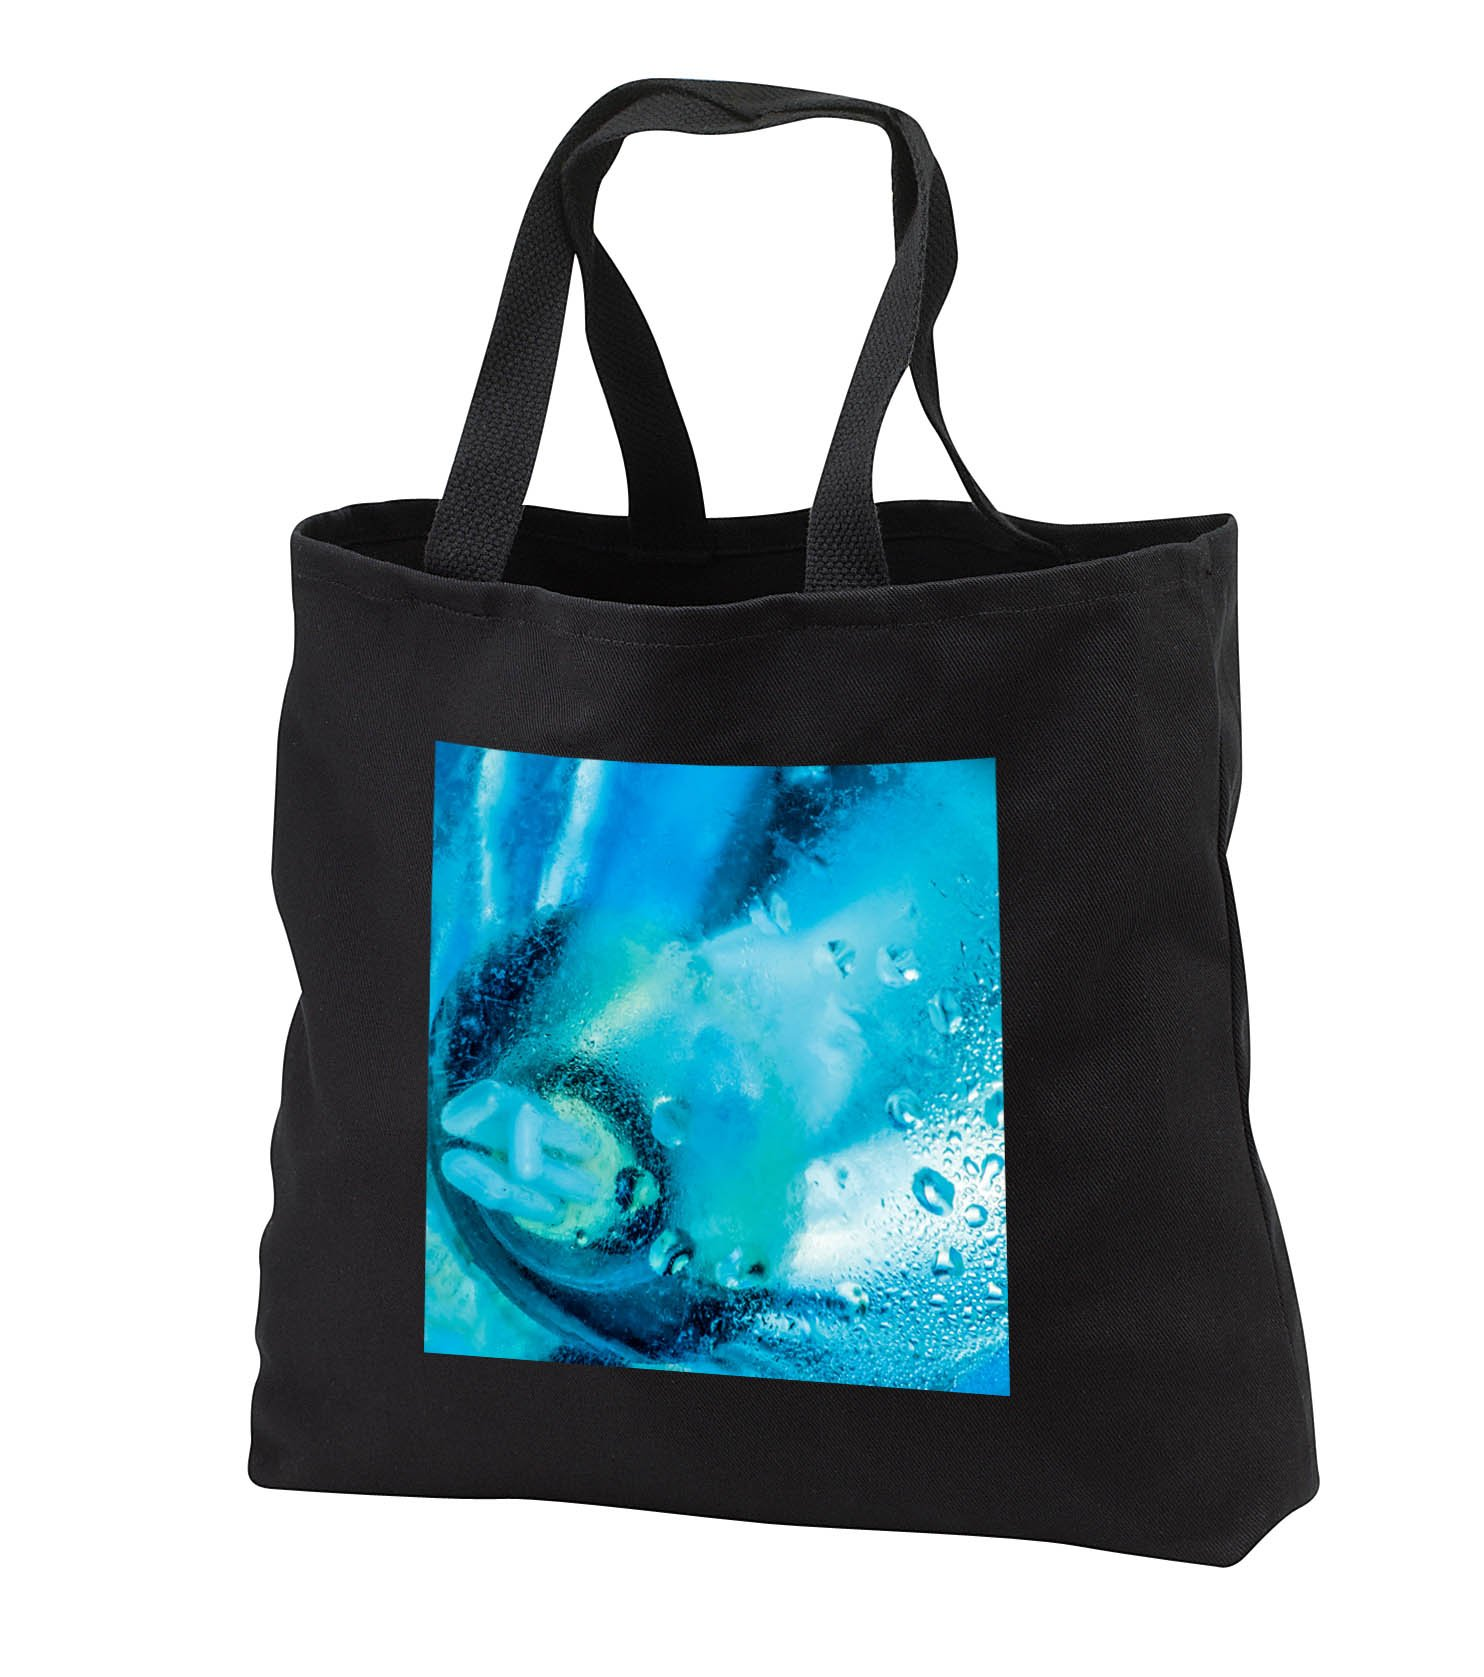 Alexis Photography - Abstracts - Abstract image of misted glass, low energy light bulb visible - Tote Bags - Black Tote Bag JUMBO 20w x 15h x 5d (tb_283999_3)